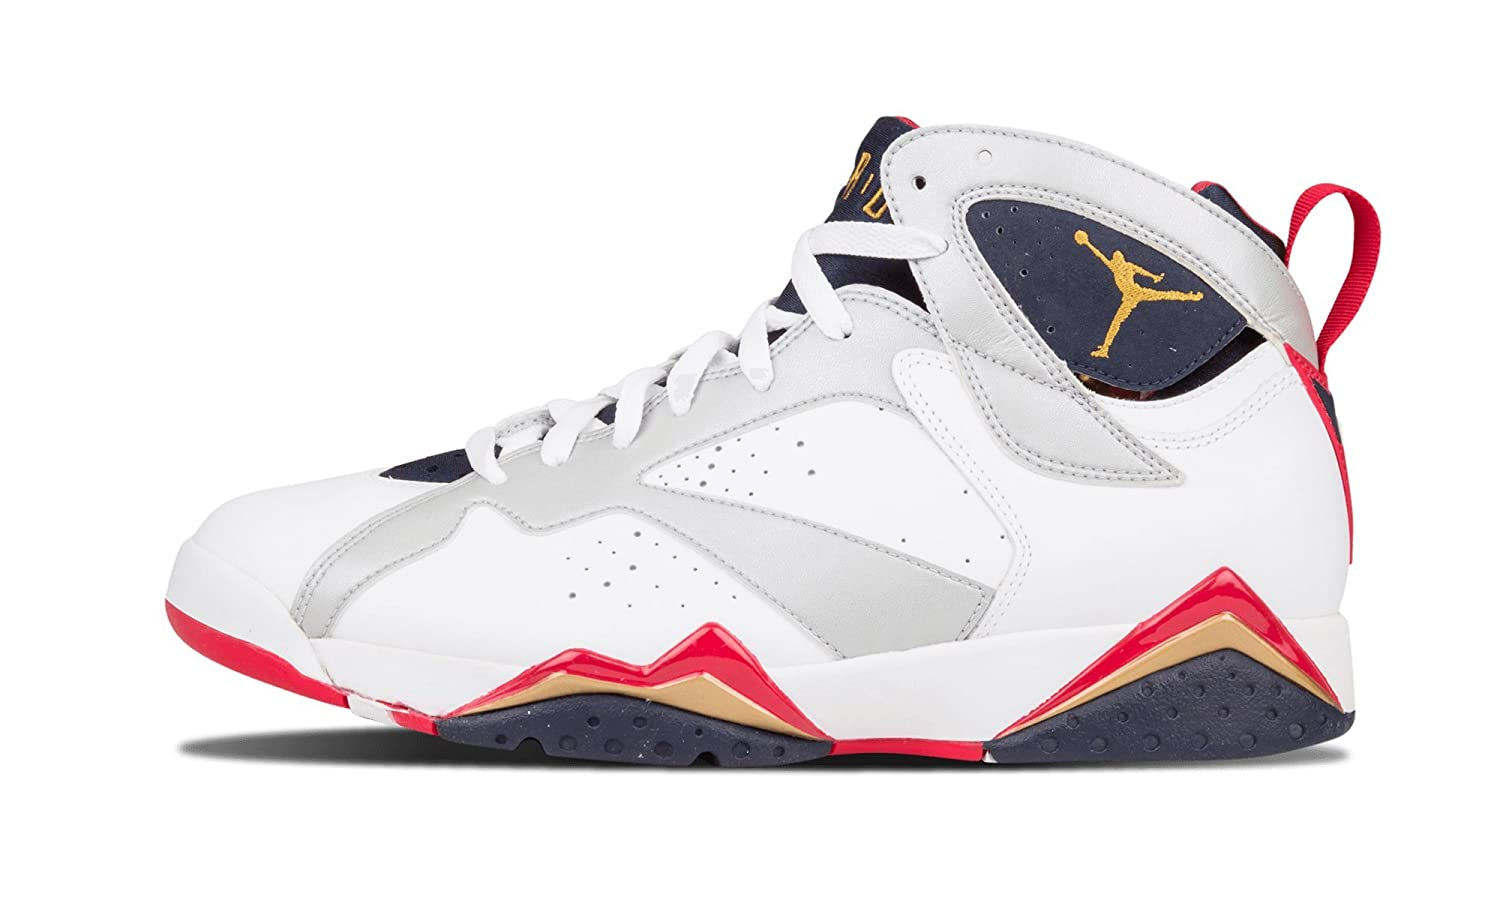 innovative design 97668 993b3 Amazon.com   NIKE Mens Air Jordan 7 Retro Olympic Leather Basketball Shoes    Basketball